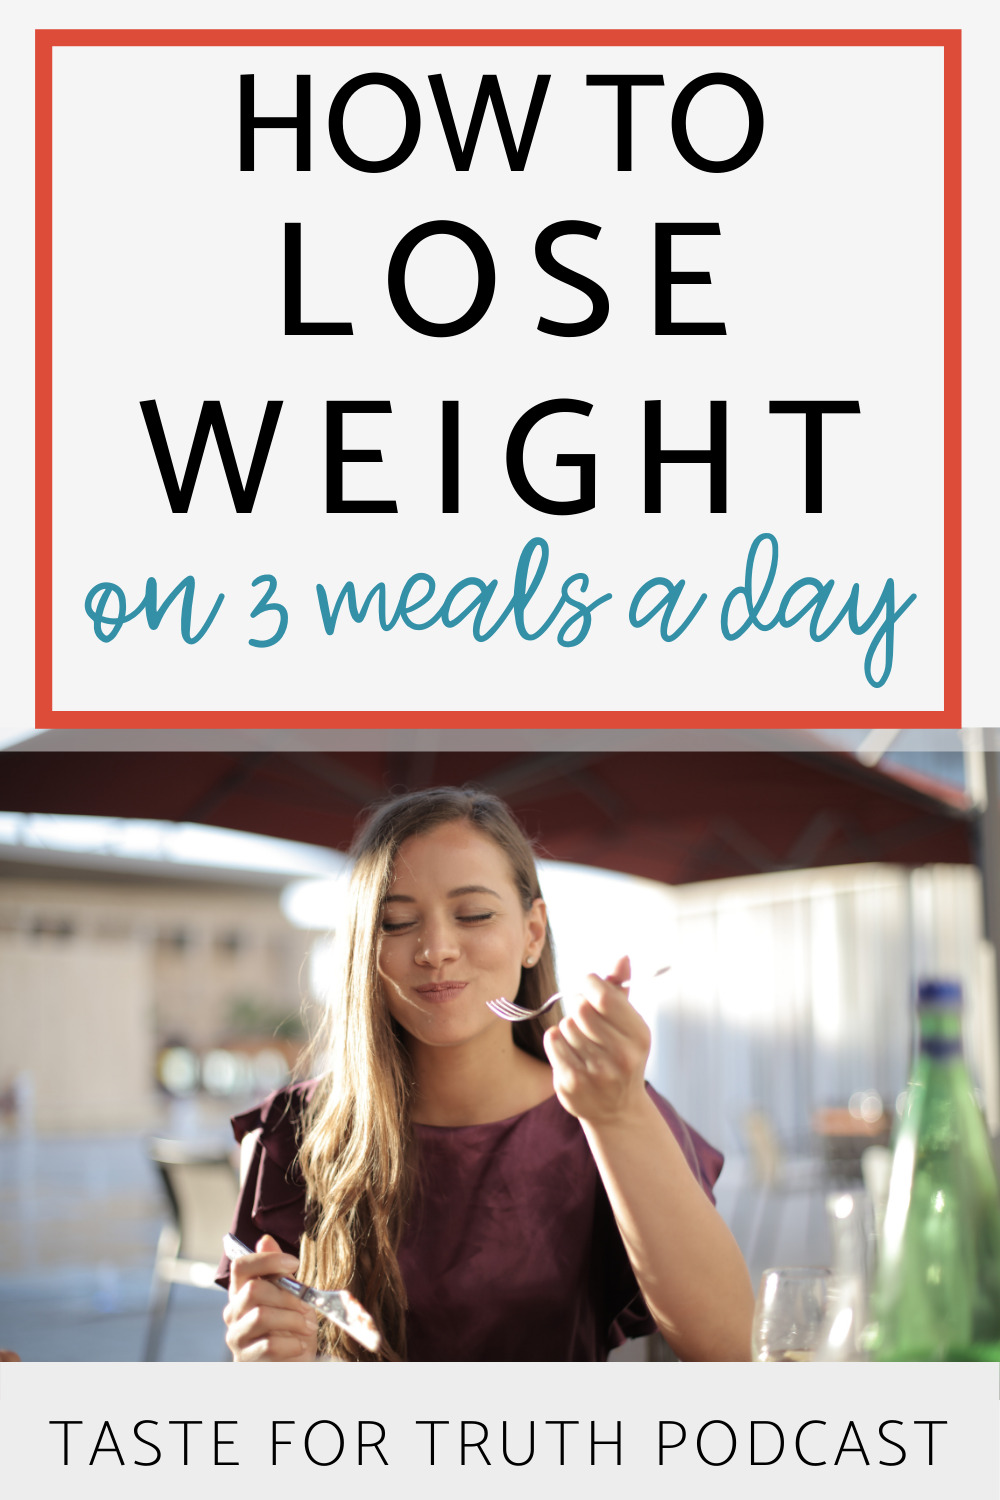 lose weight on 3 meals a day